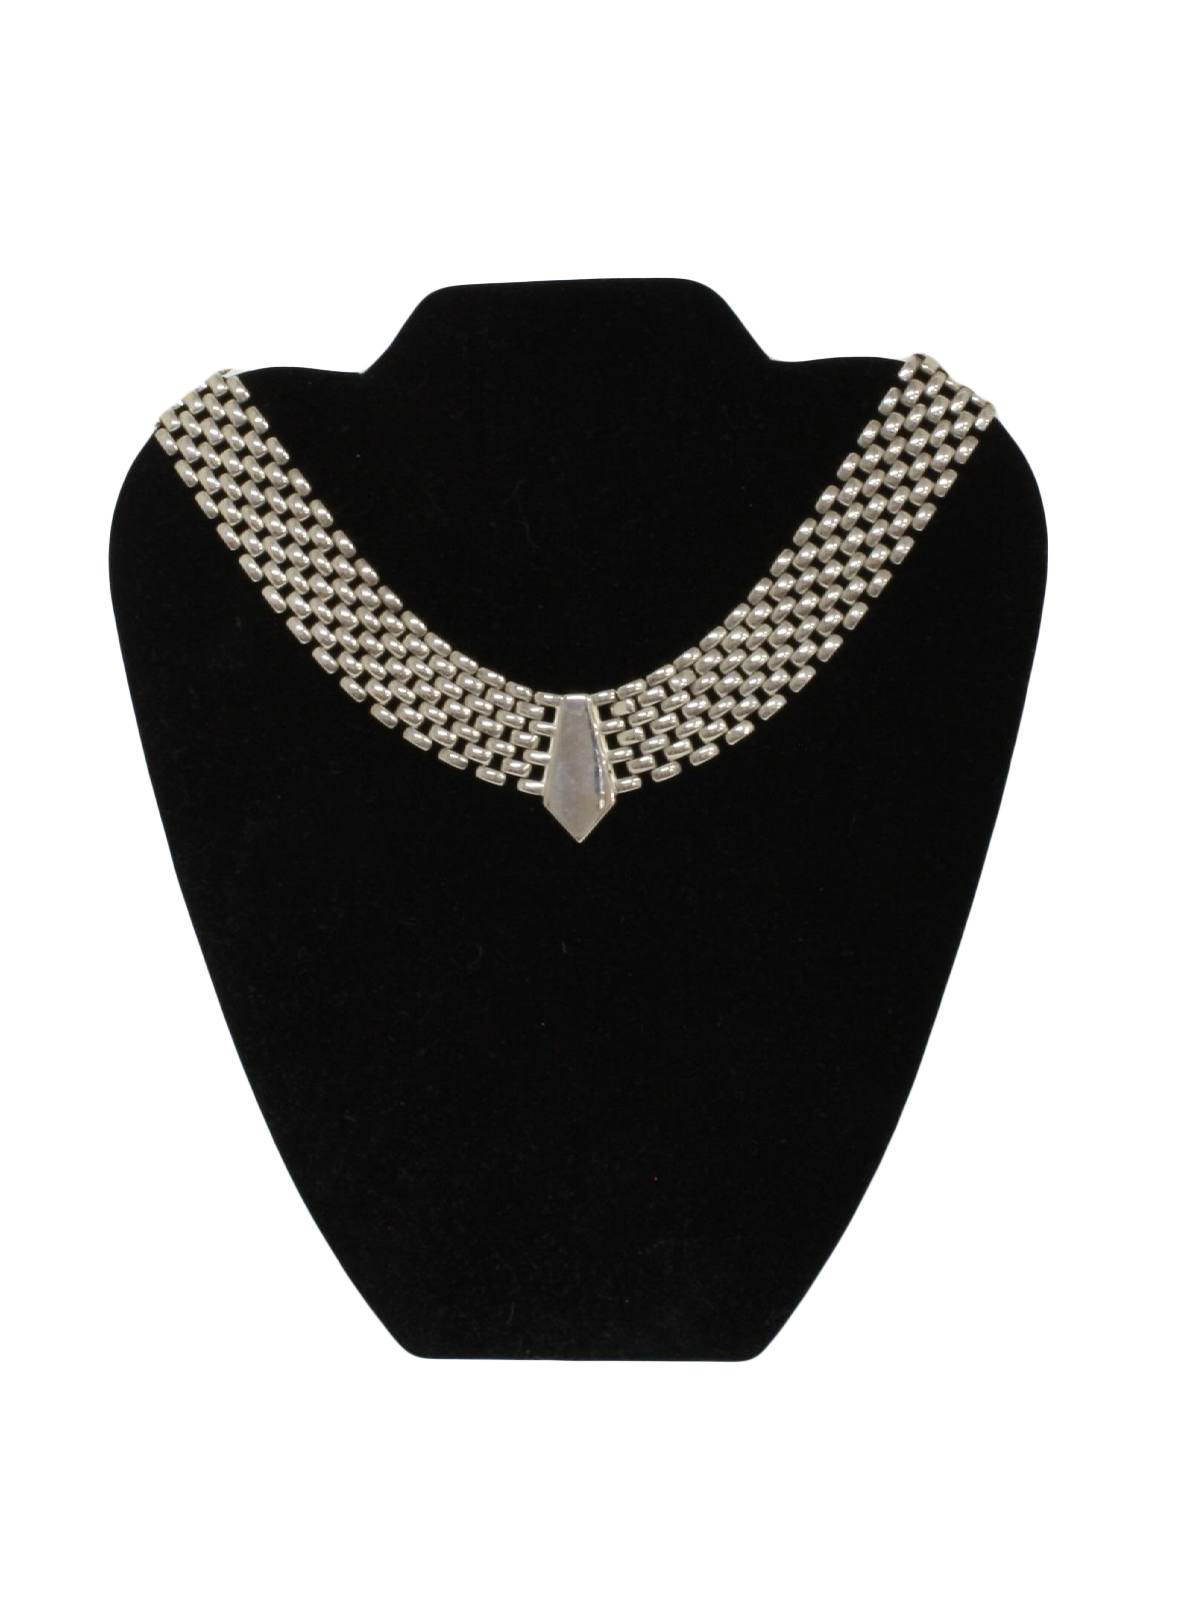 50s-60s Necklaces